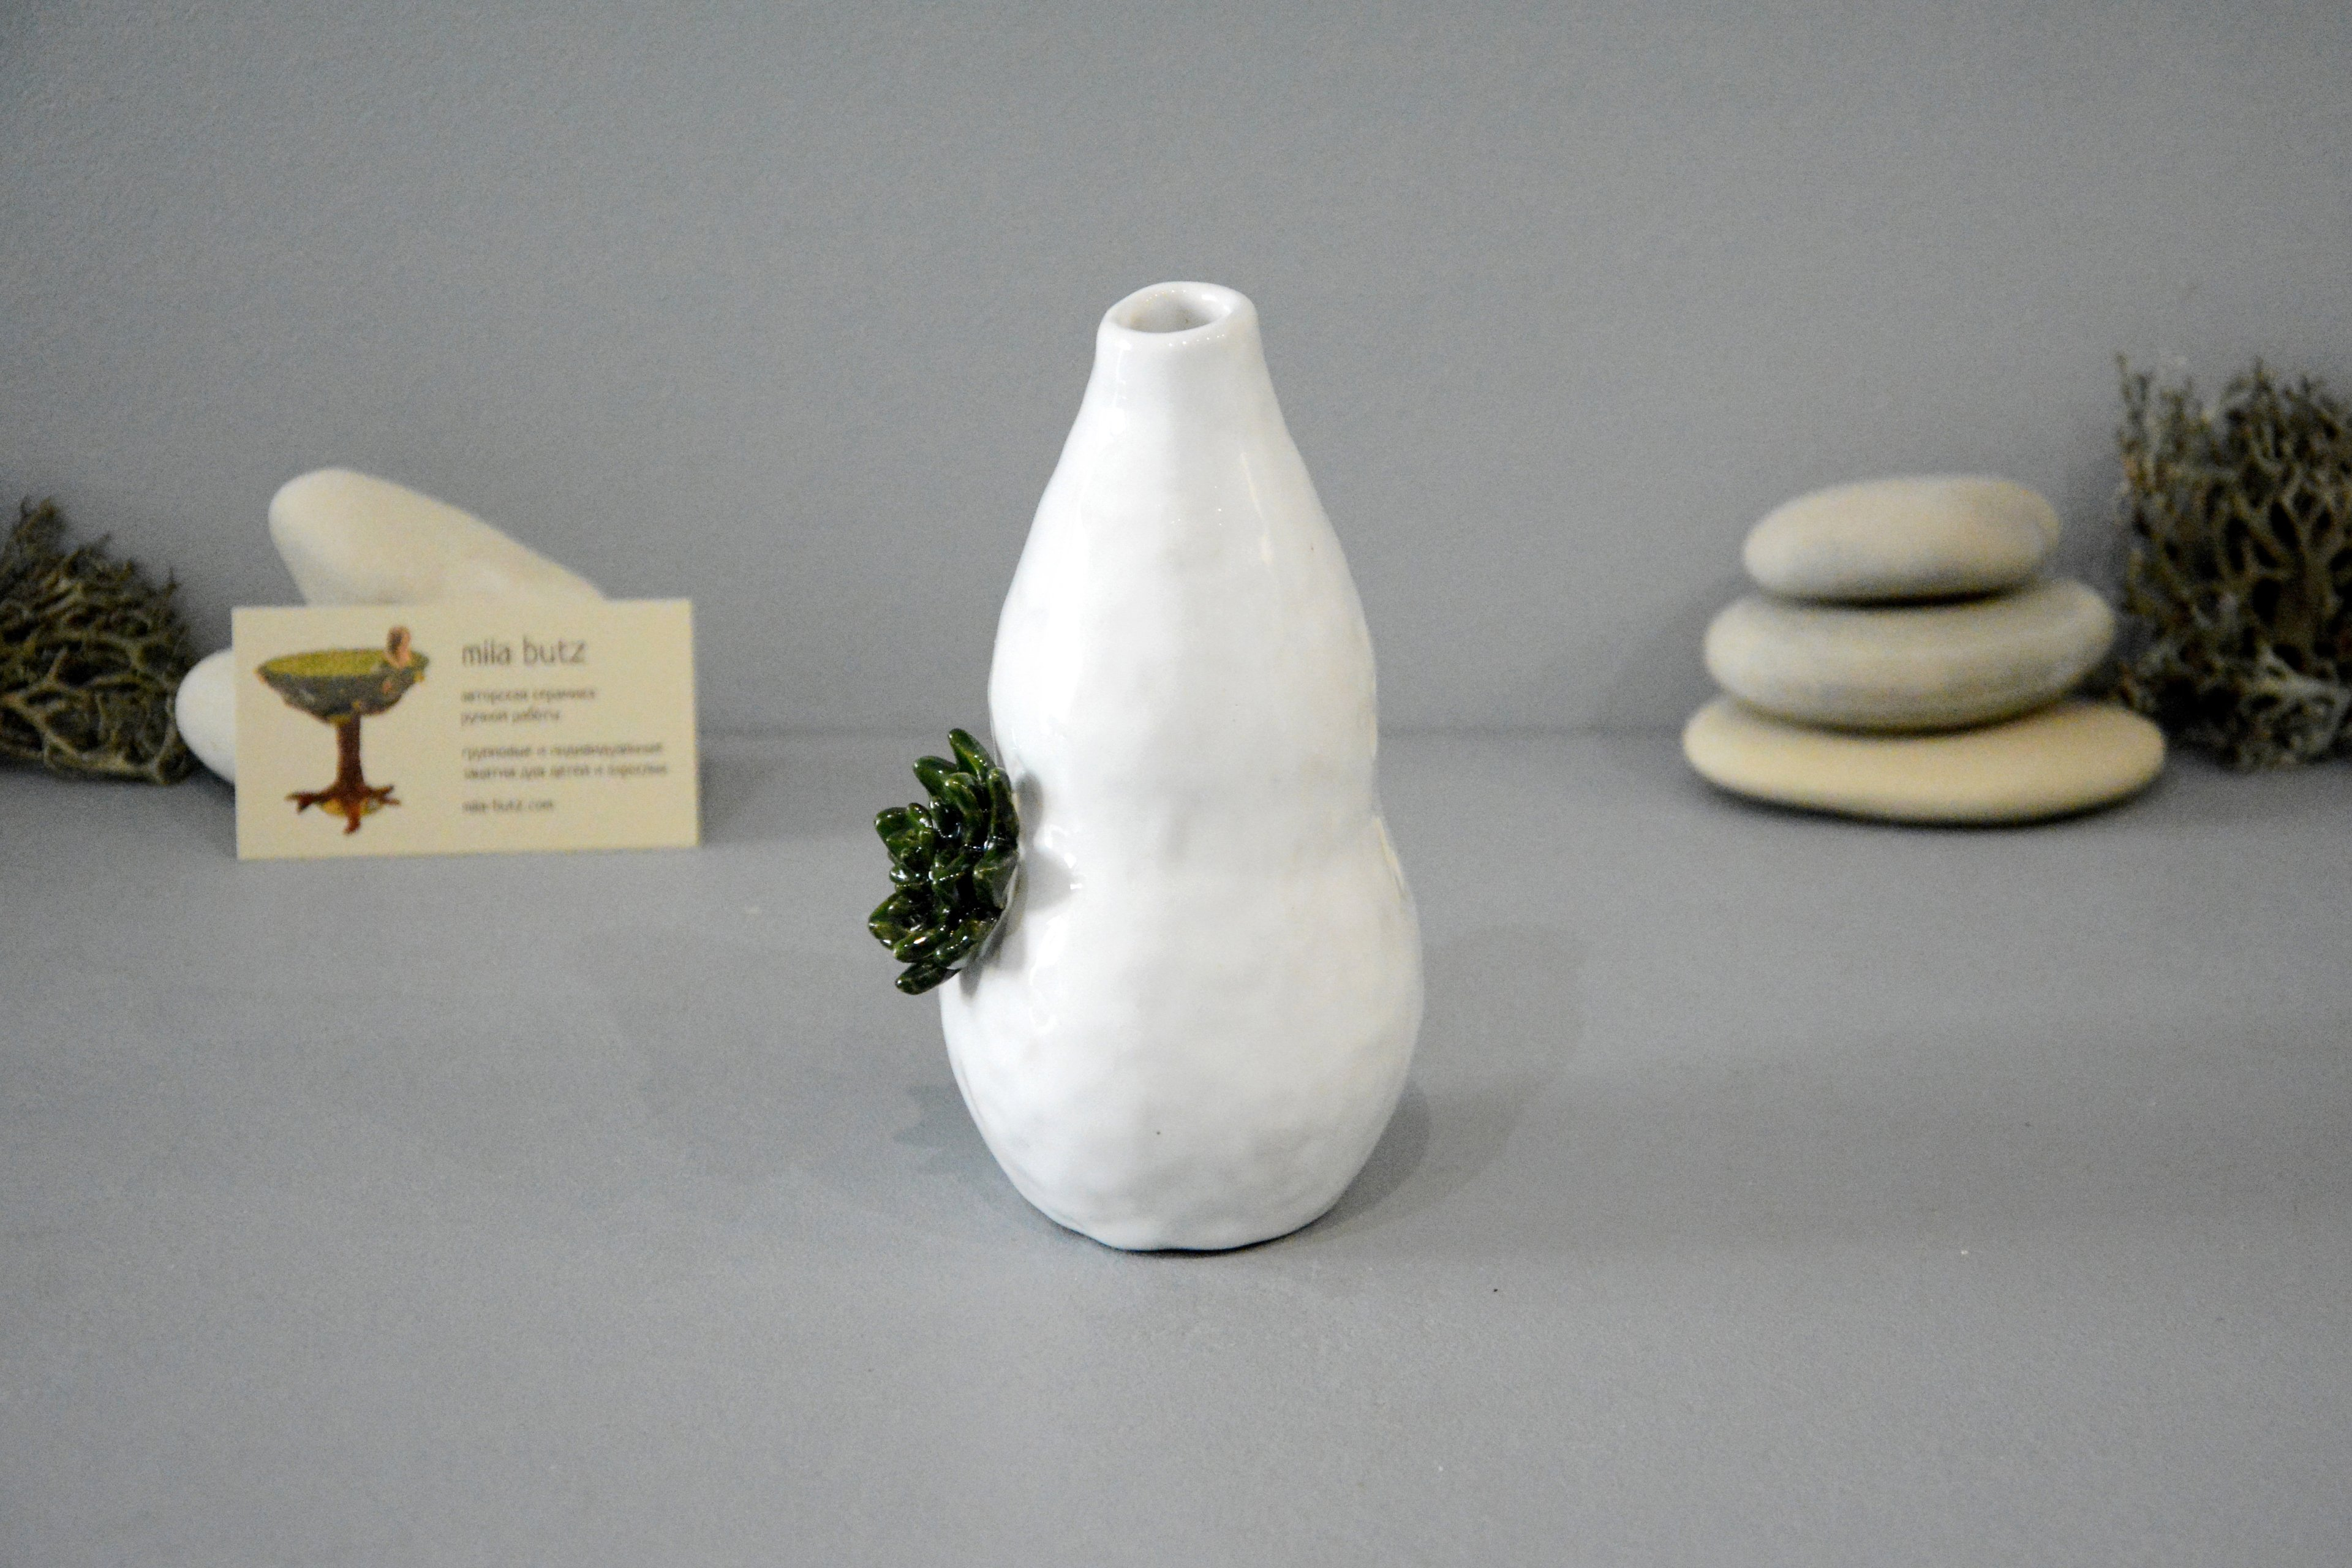 Interior vase «Echeveria», height - 16 cm, color - white. Photo 1362.